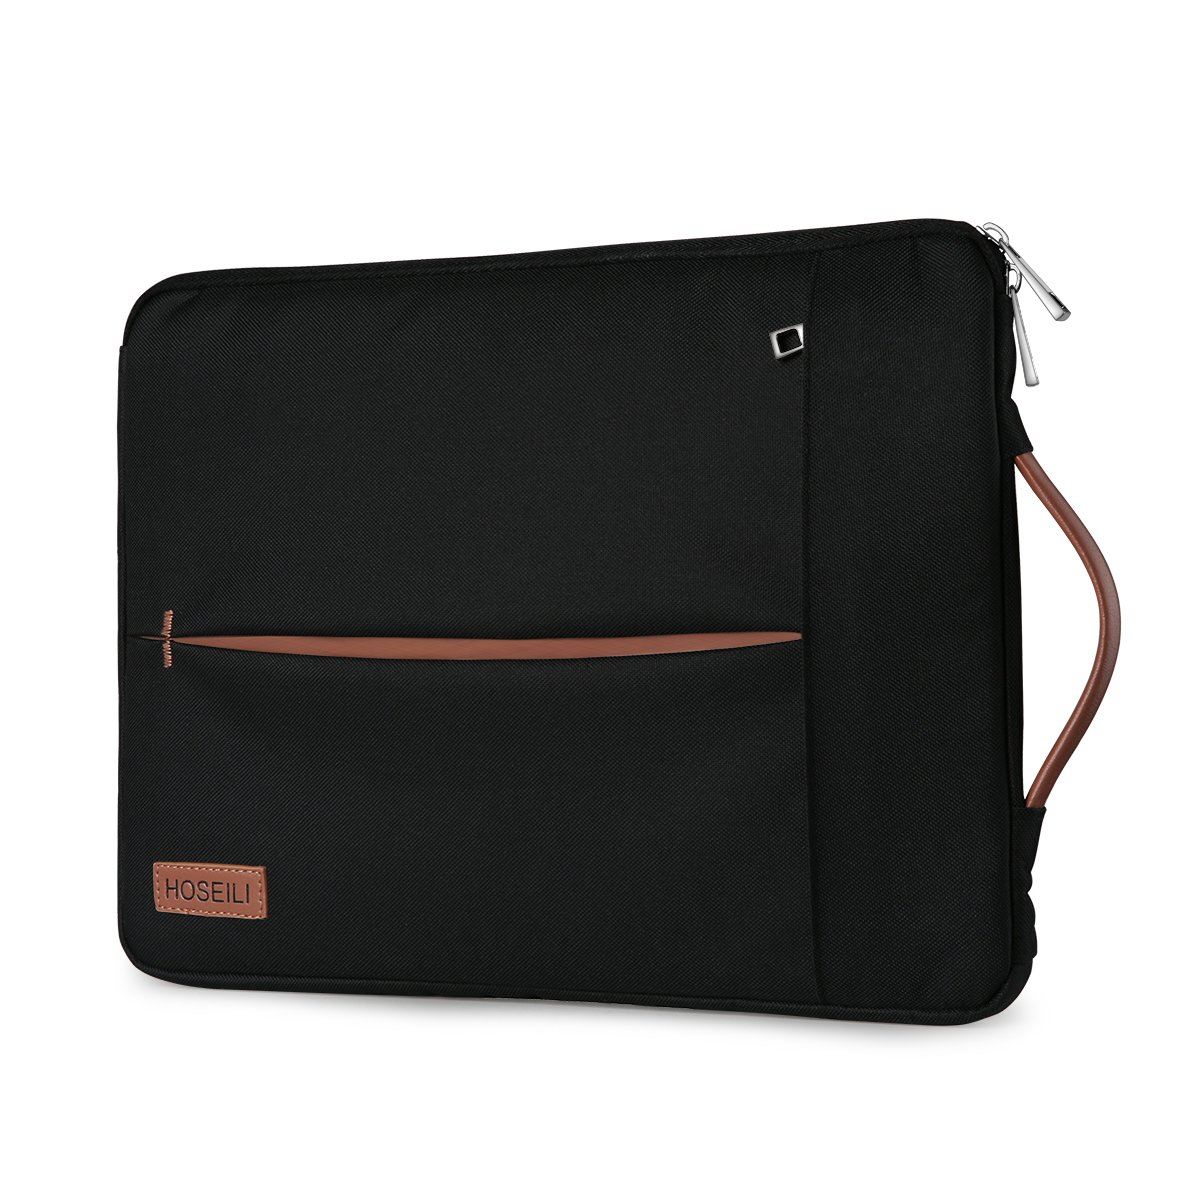 13-13.5 Inch Laptop Sleeve Hoseili Water Resistant Briefcase with Leather Handle for Apple New Macbook Pro/Macbook Air, Shockproof Lightweight Case for Most 13'' Ultrabook Surface Dell HP - Black